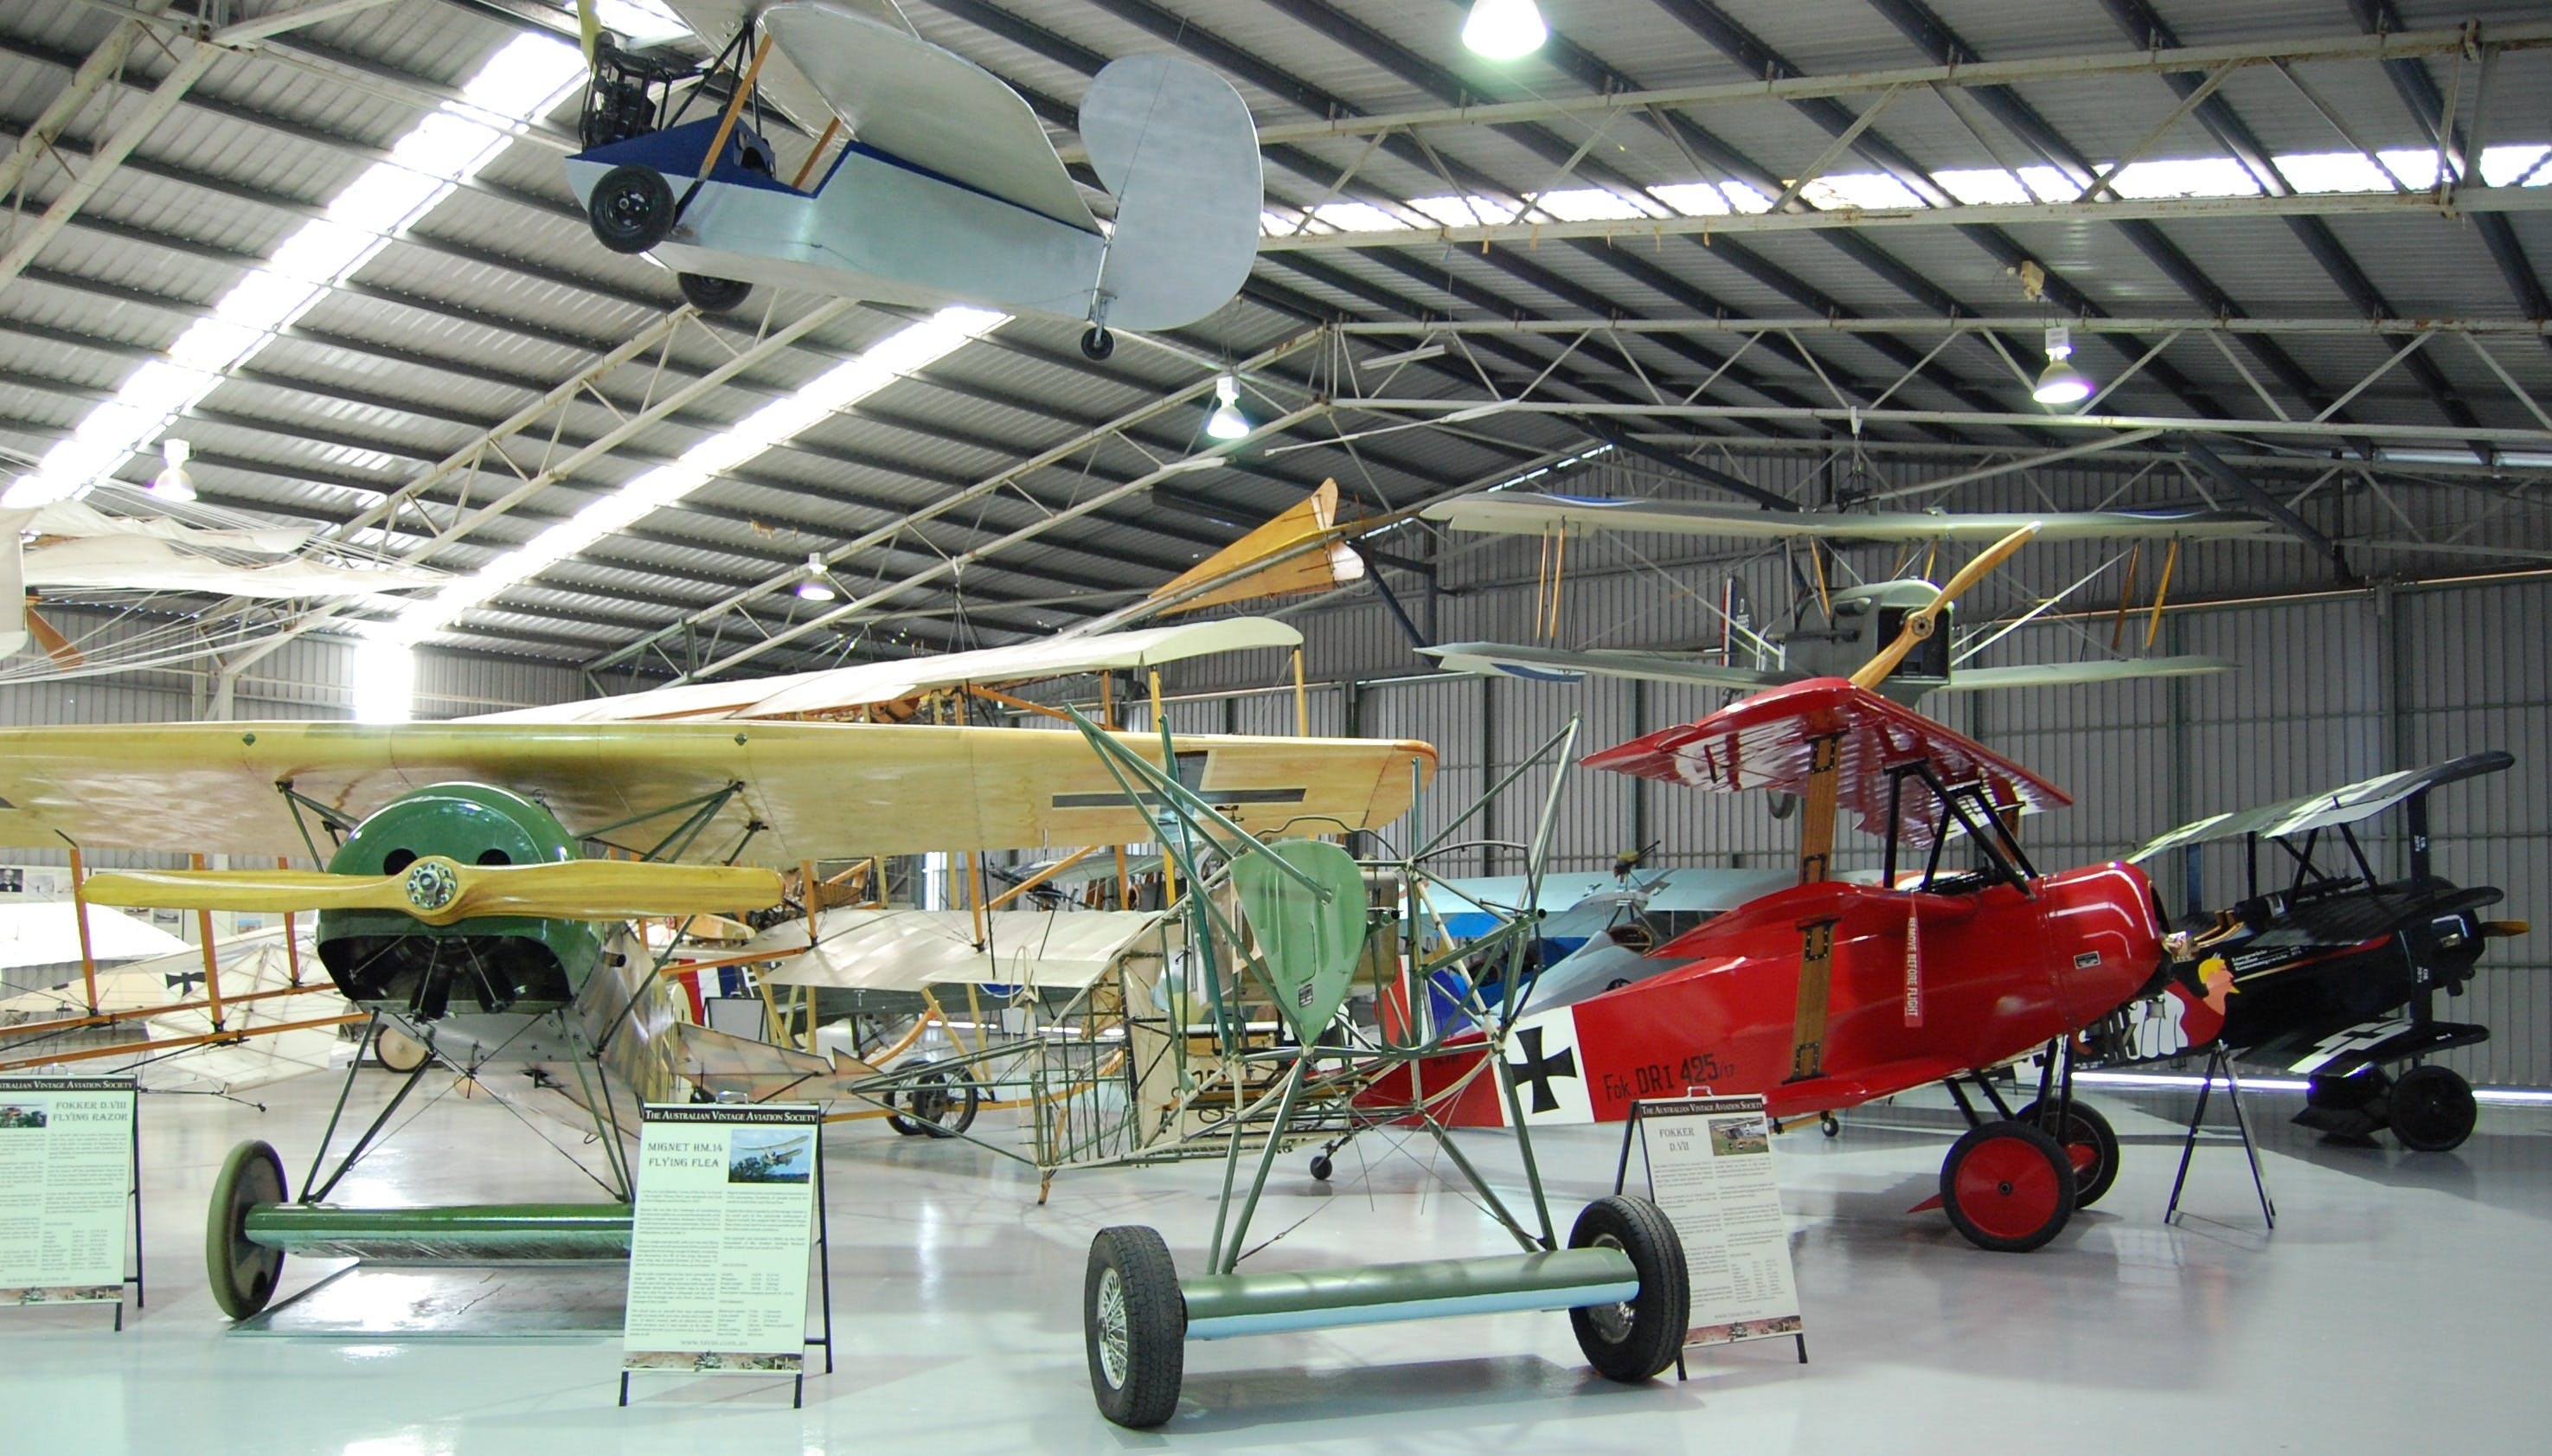 The Australian Vintage Aviation Society Museum - Find Attractions